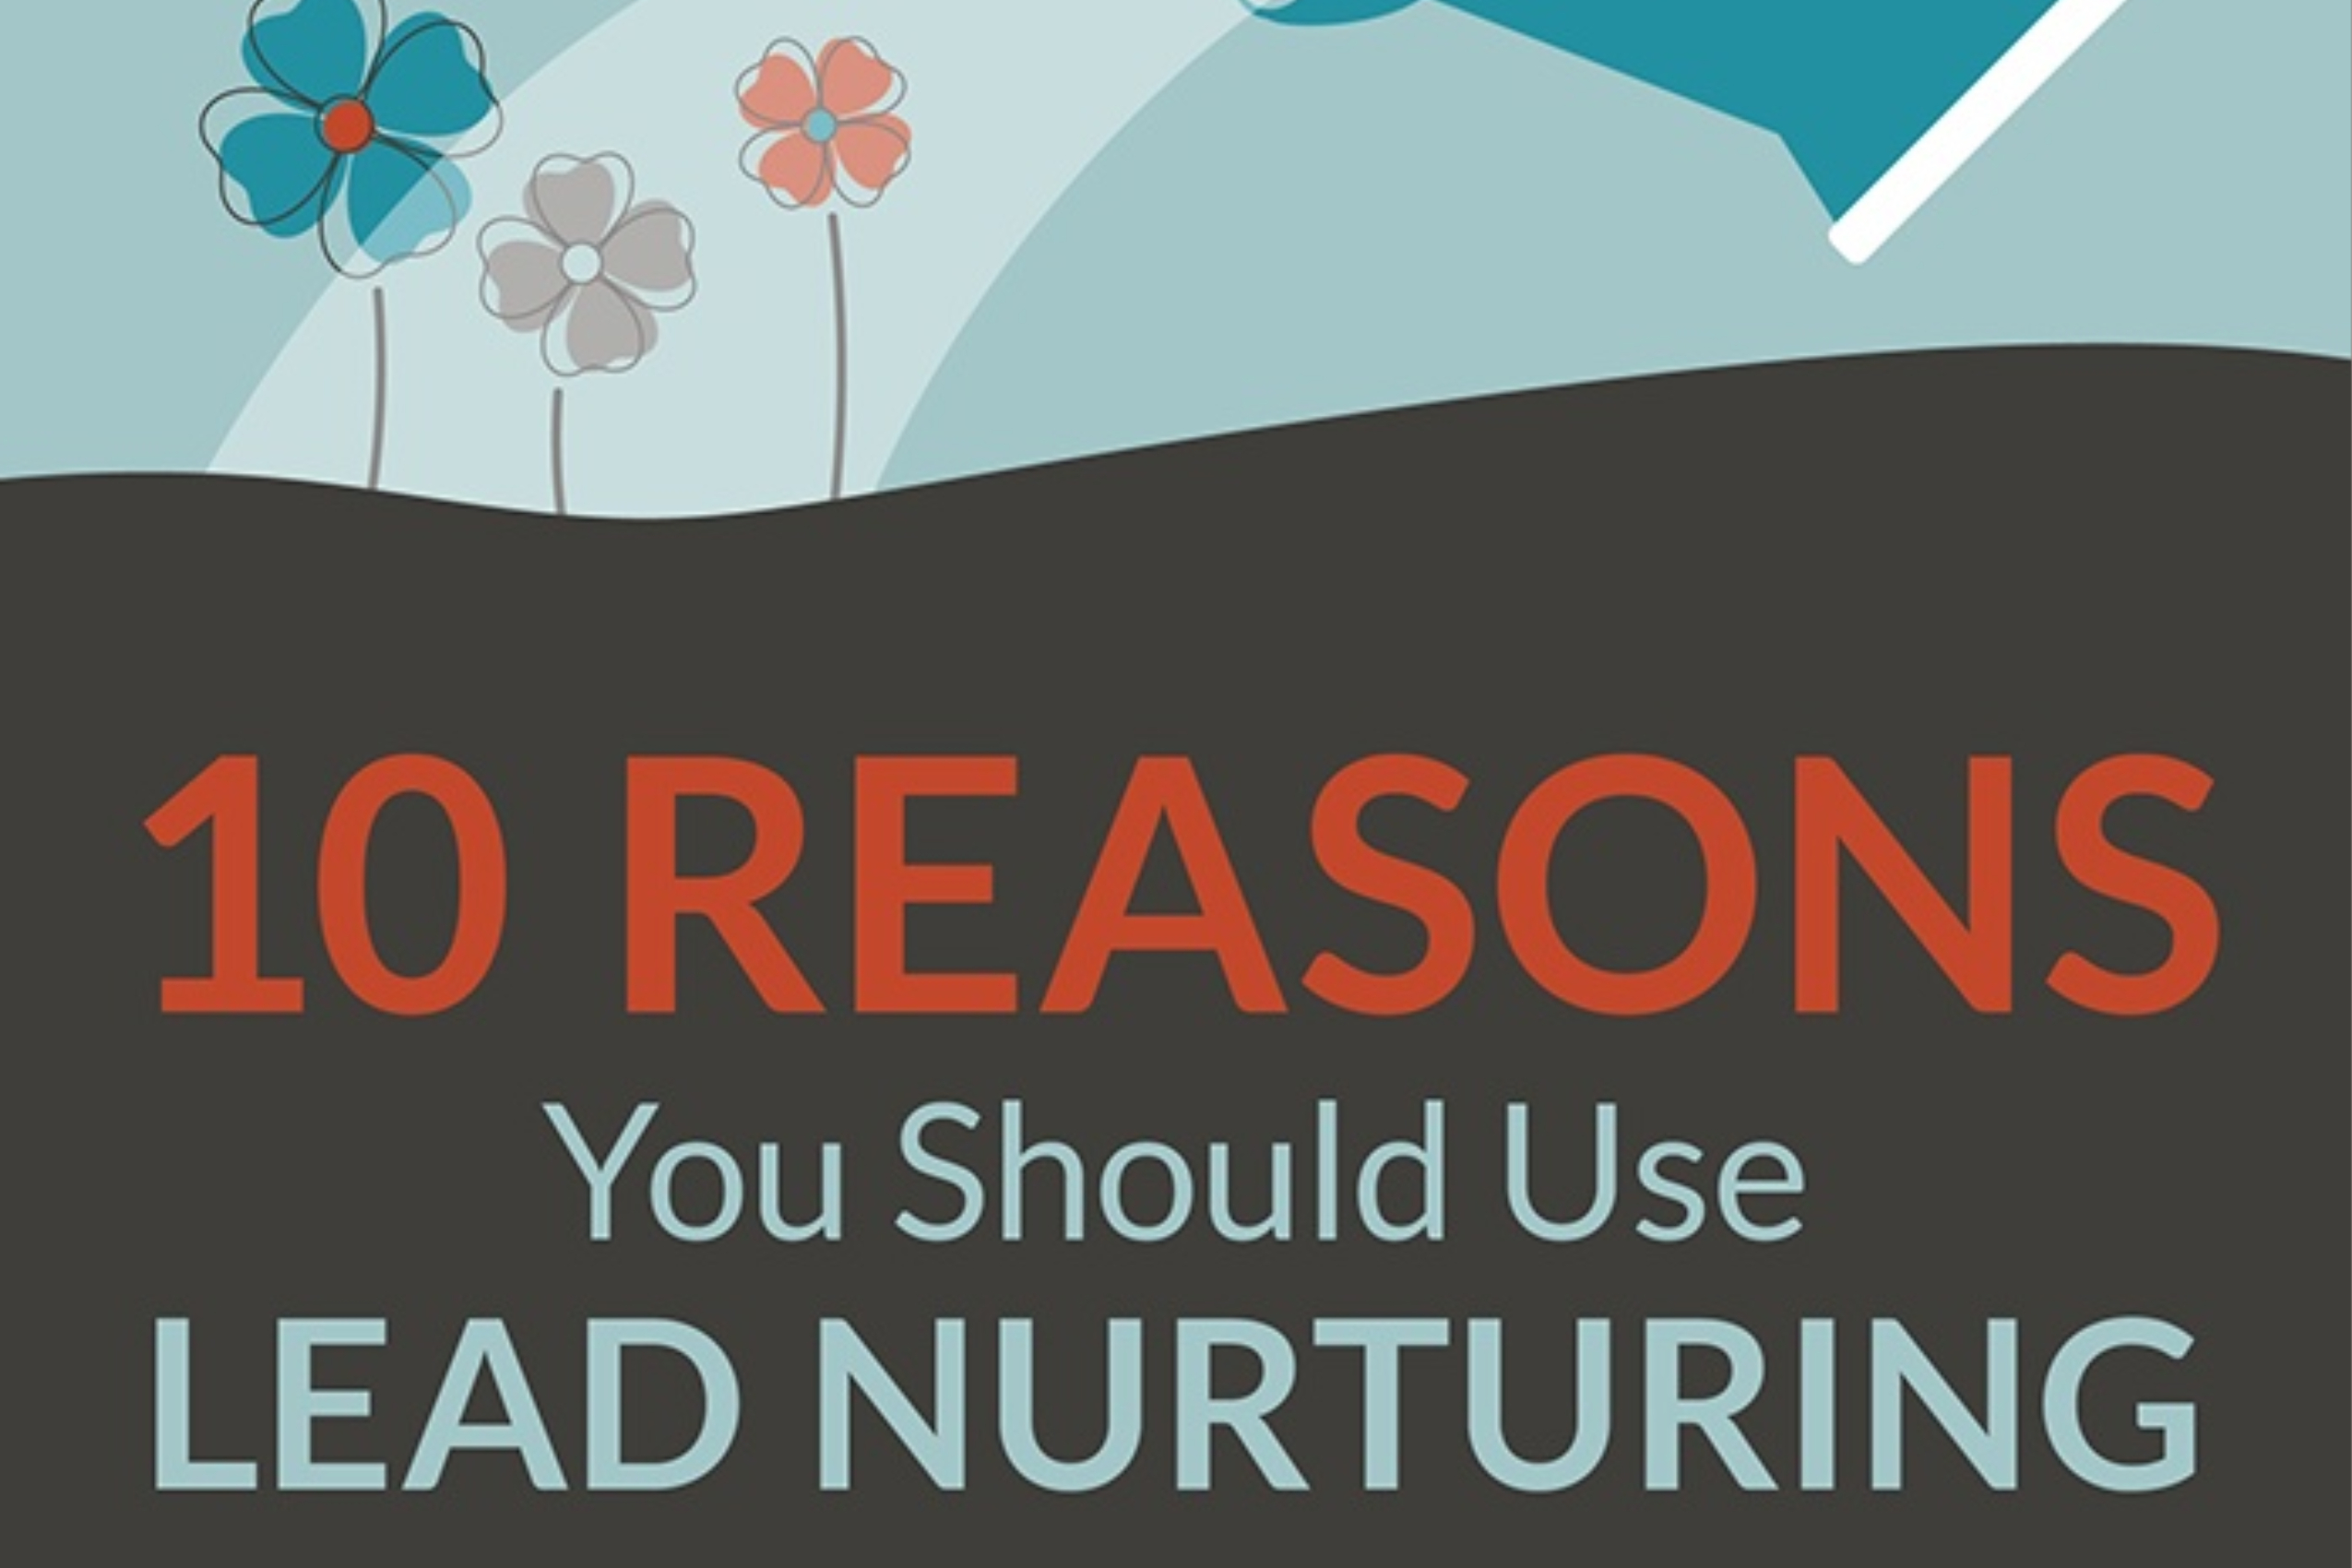 10 Stats To Back Up Your Lead Nurturing Efforts (infographic)